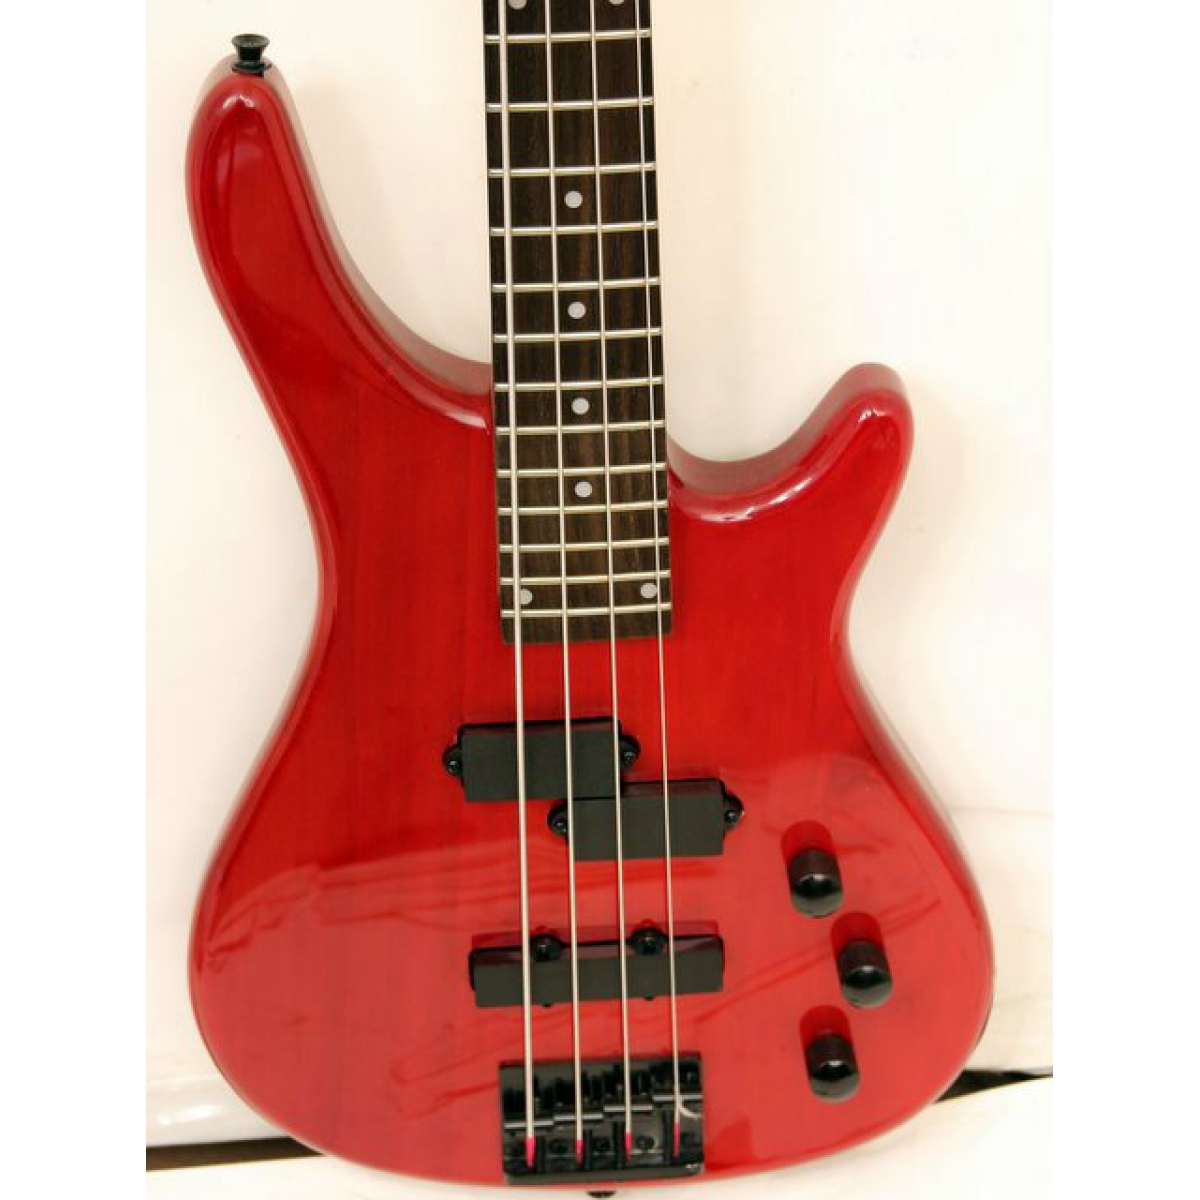 westcoast jp1 4 string bass trans red beginner 39 s bass guitar at promenade music. Black Bedroom Furniture Sets. Home Design Ideas